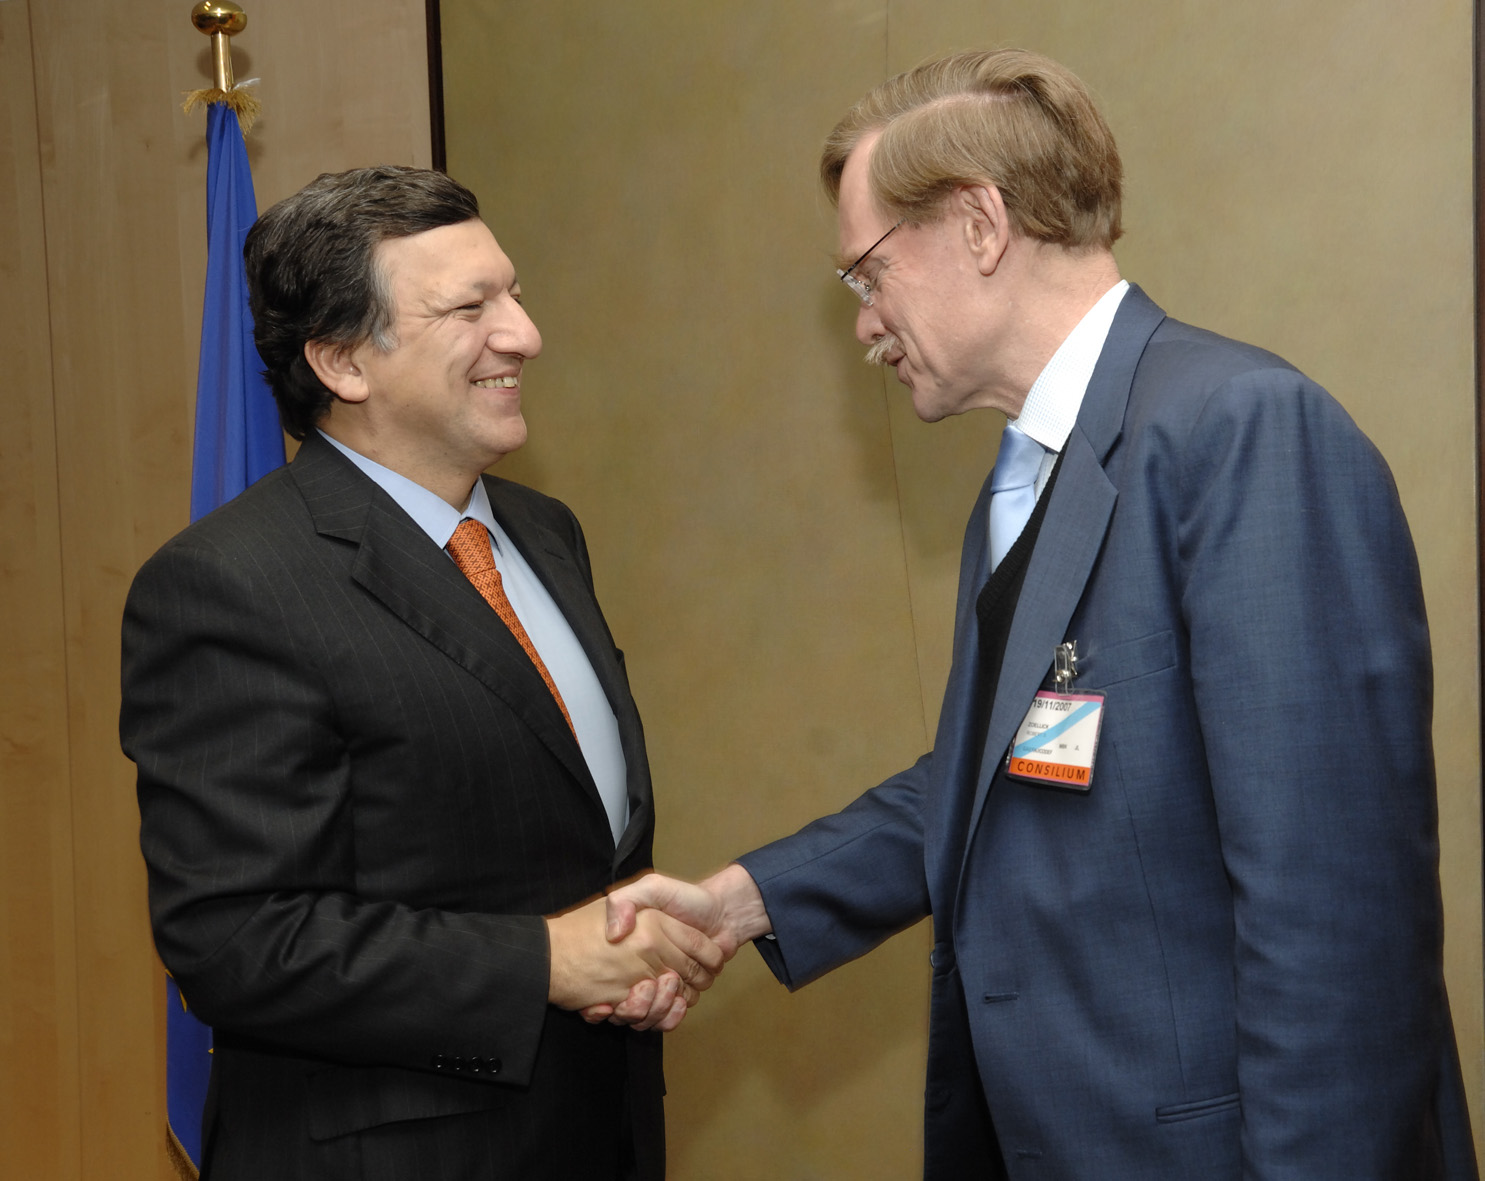 Visit by Robert Zoellick, President of the World Bank, to the EC